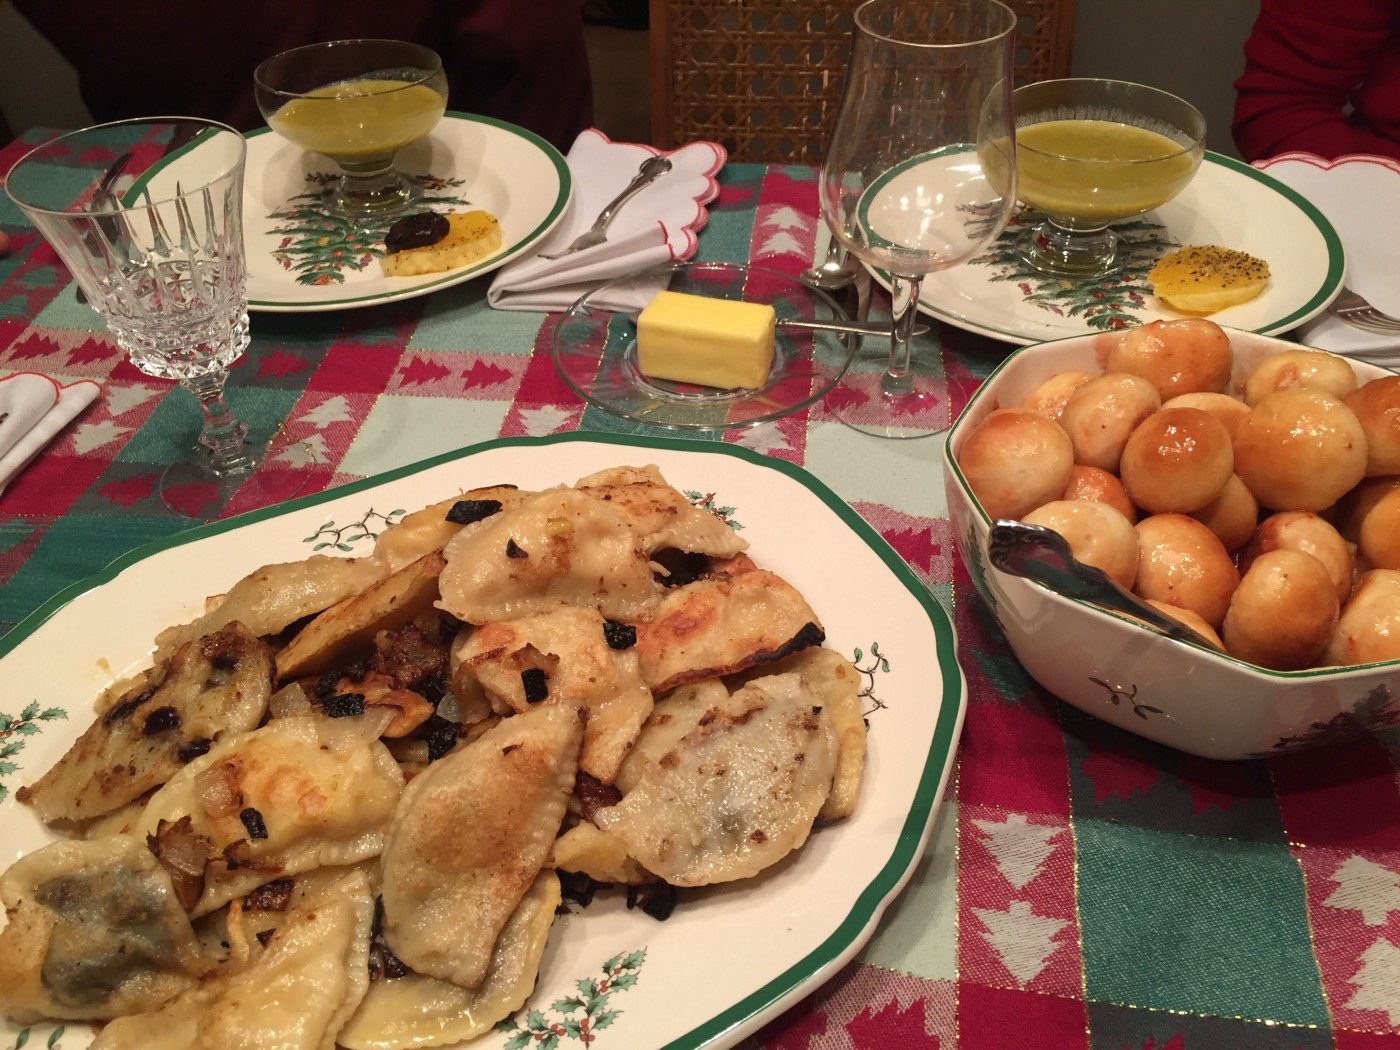 Plates with pierogi, bobalki, and glasses of pea soup sitting on top of a red, white, and green Christmas table cloth.